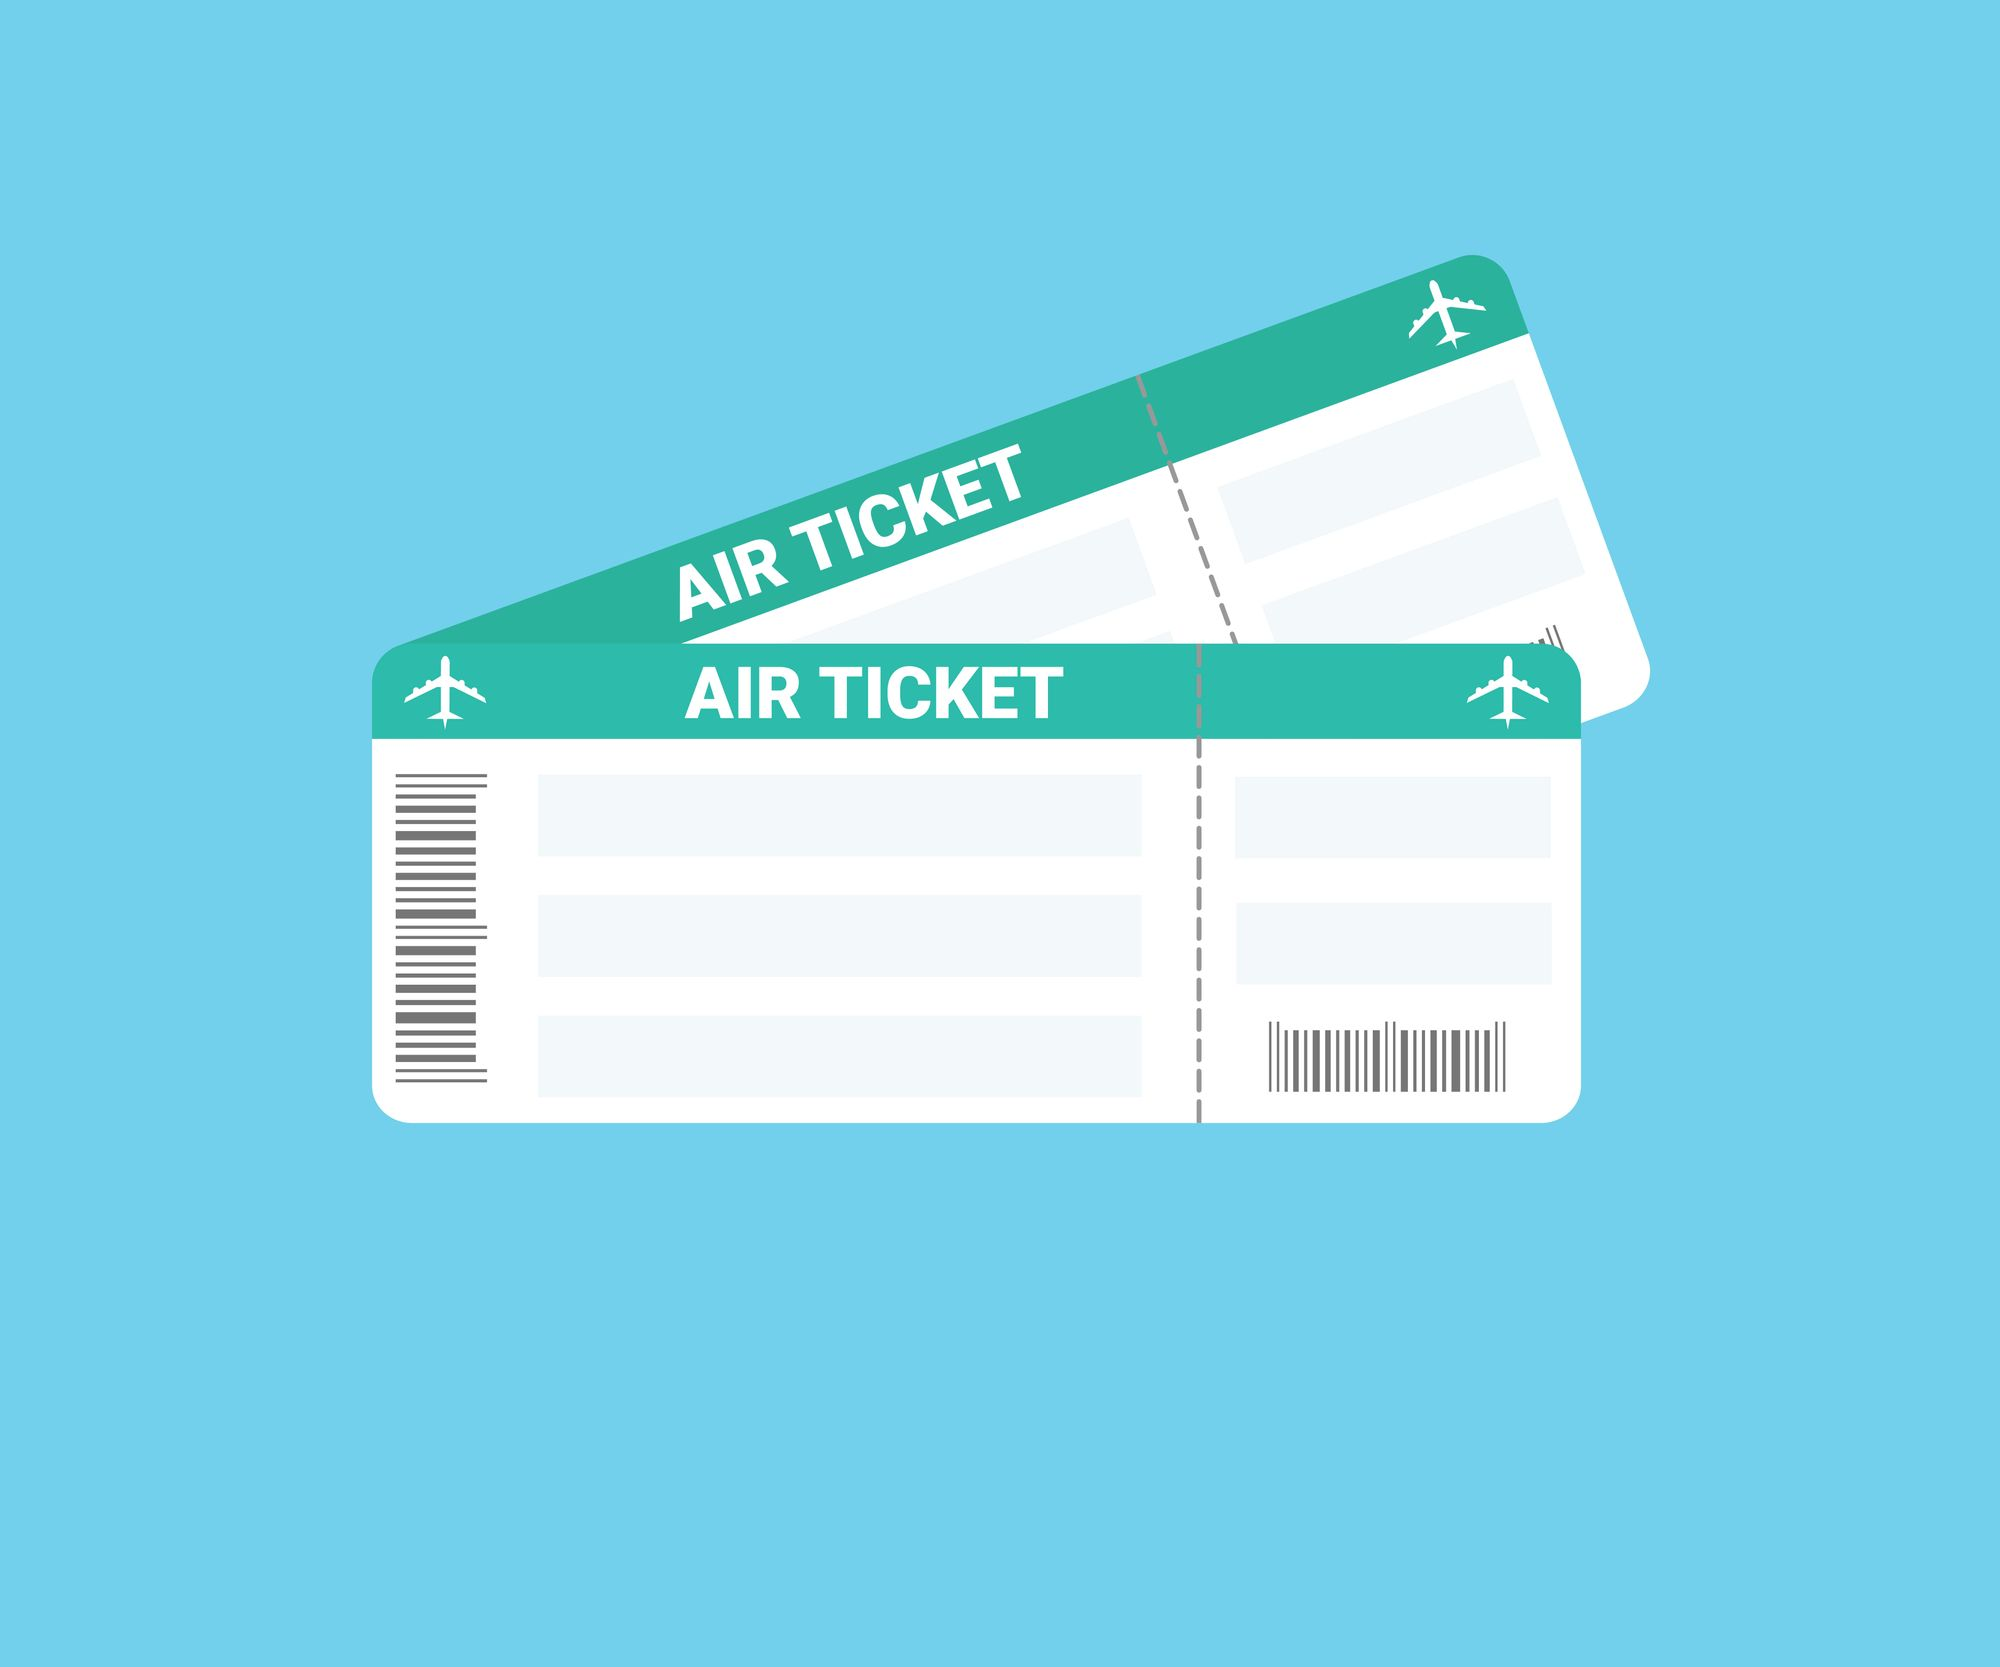 Has the effect of GST on air tickets made travelling more expensive?